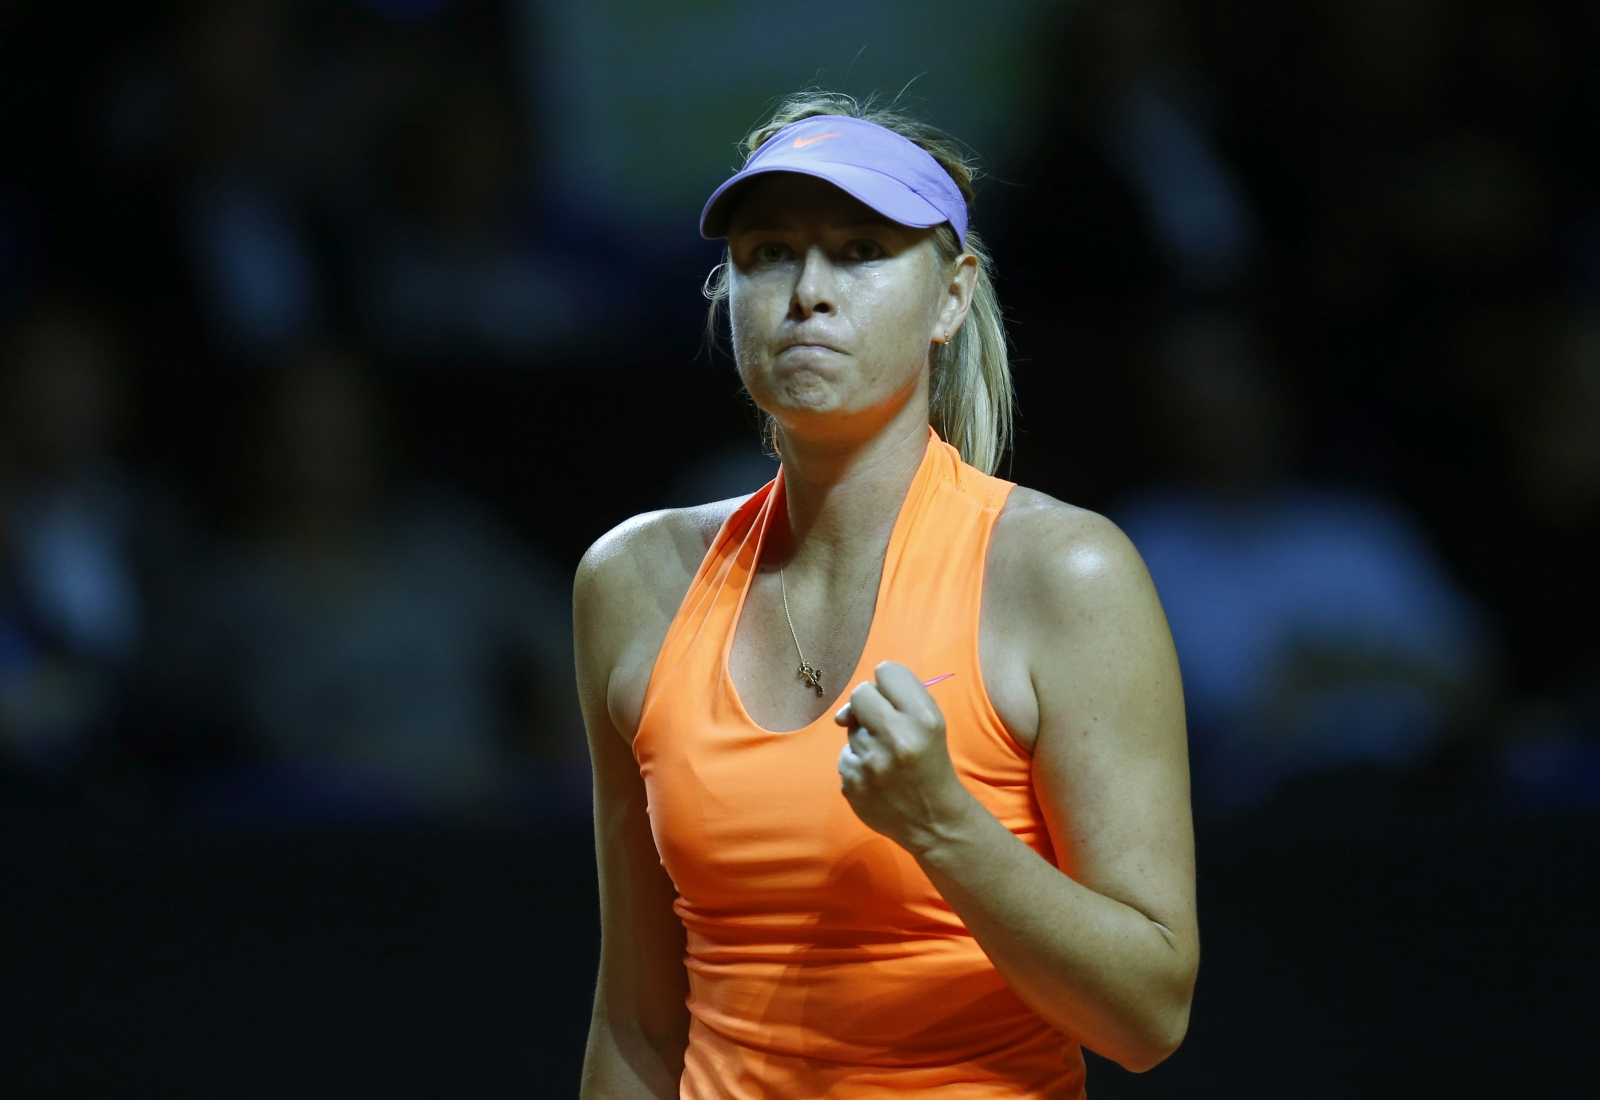 Maria Sharapova Victorious Over Vinci In Return From Drug Ban